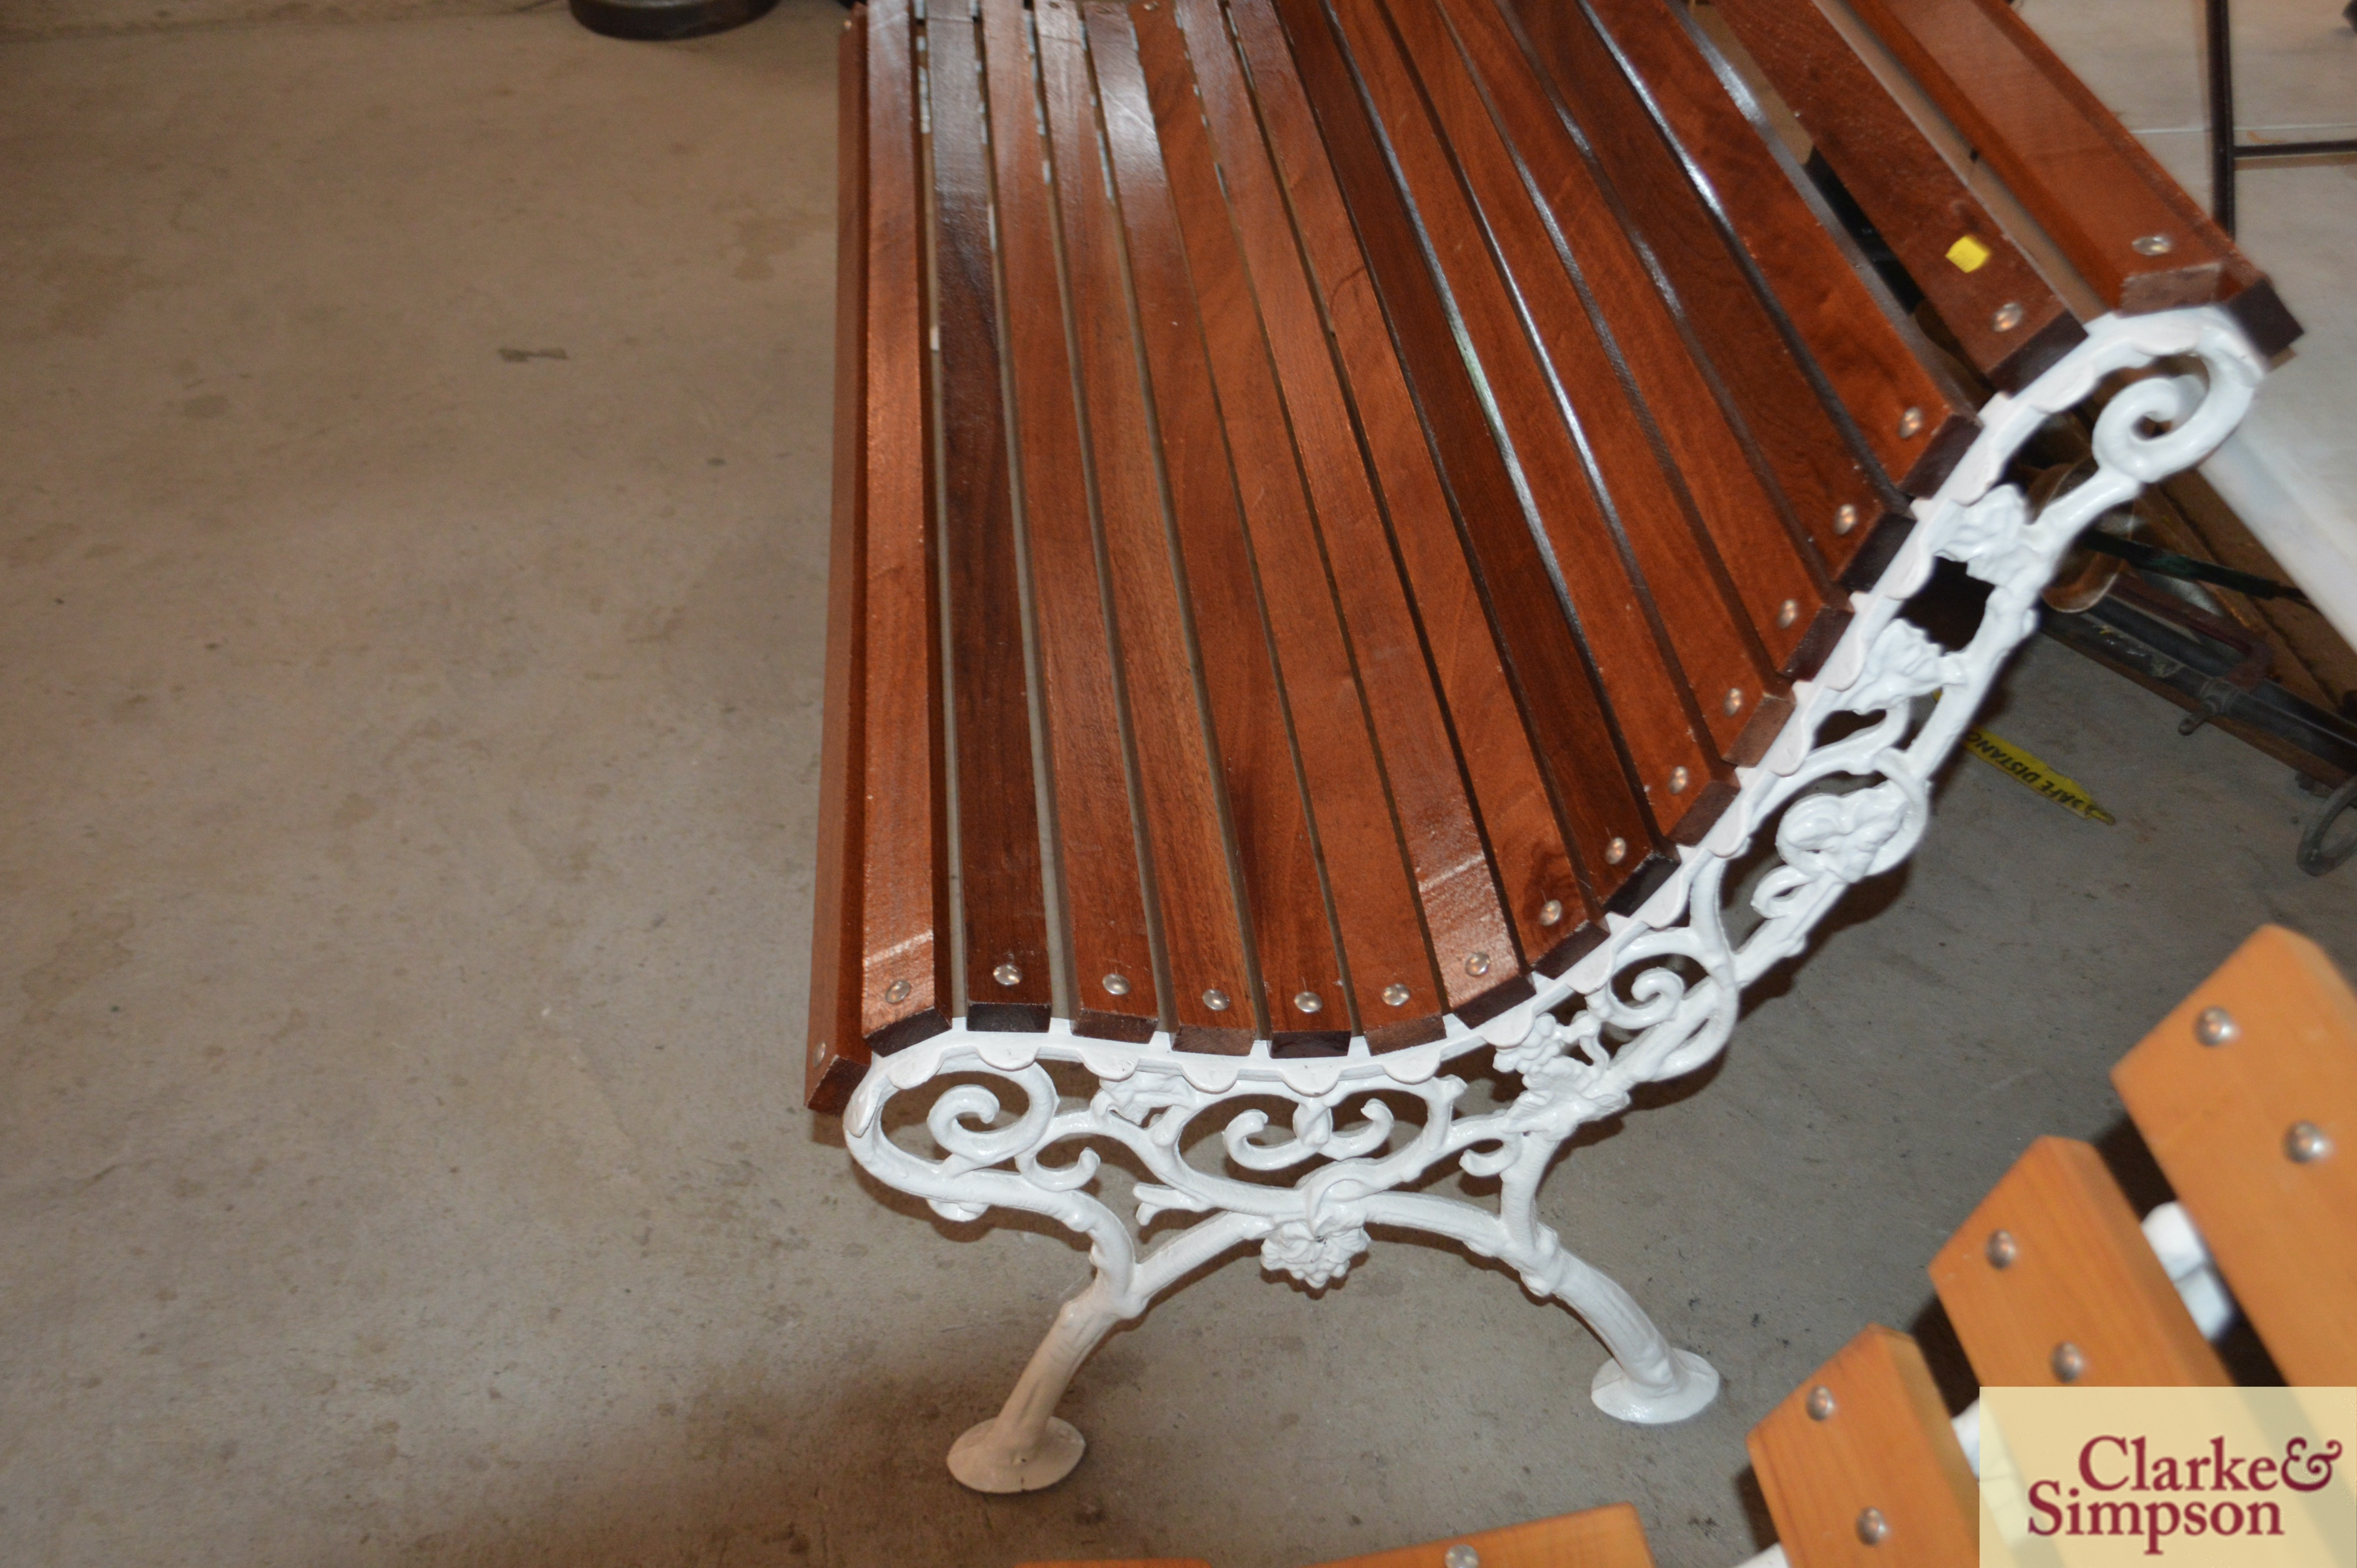 An ornate cast iron and teak slatted roll top benc - Image 4 of 4